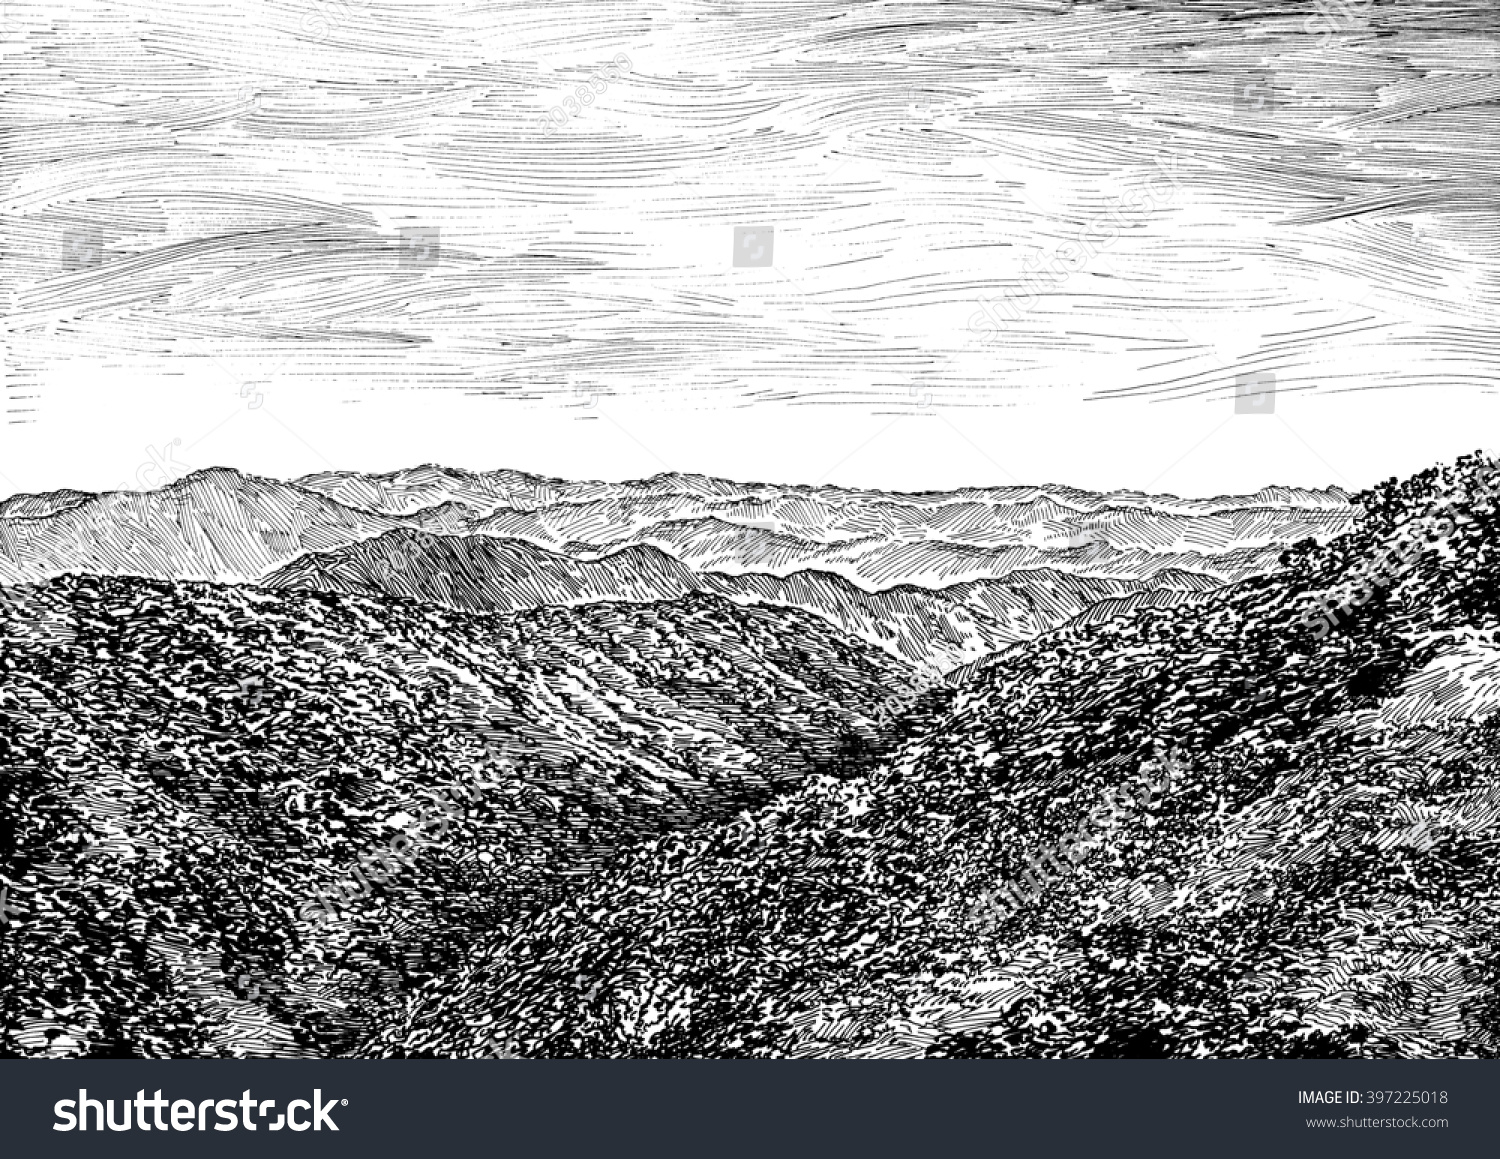 Royalty Free Stock Illustration Of Japan Mountain View Perspective